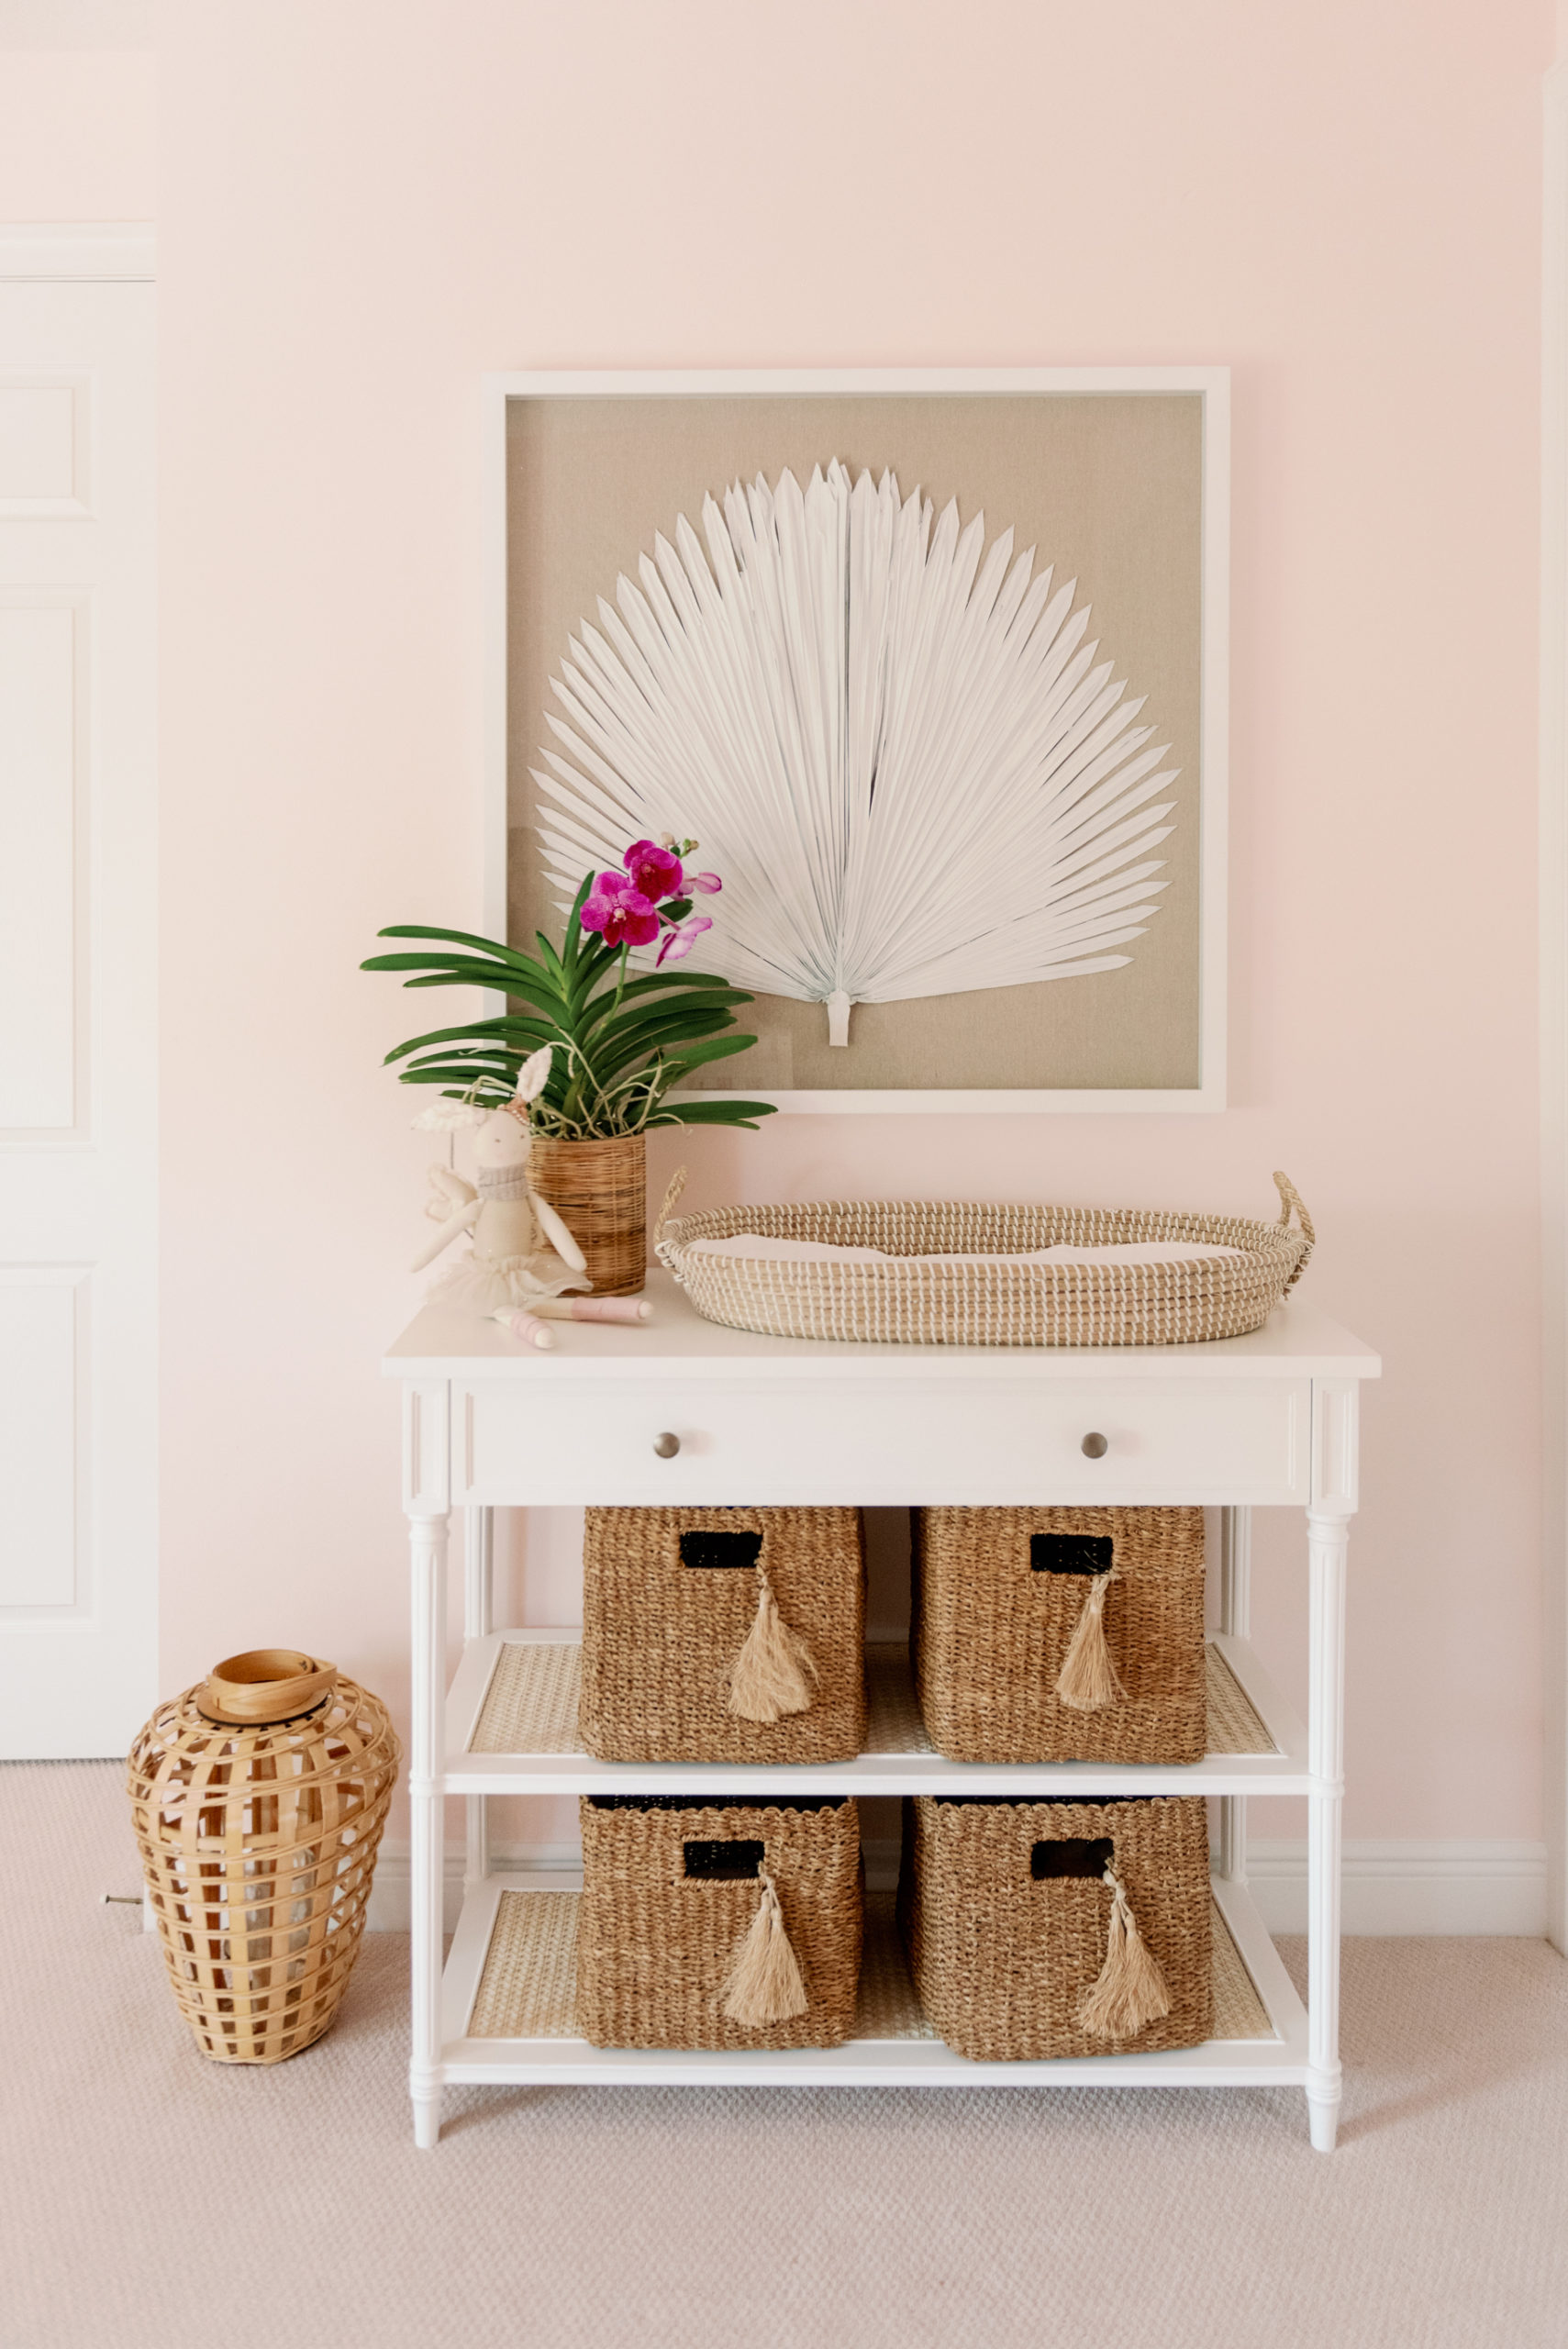 Framed Palm Art Over Changing Table with Storage Baskets